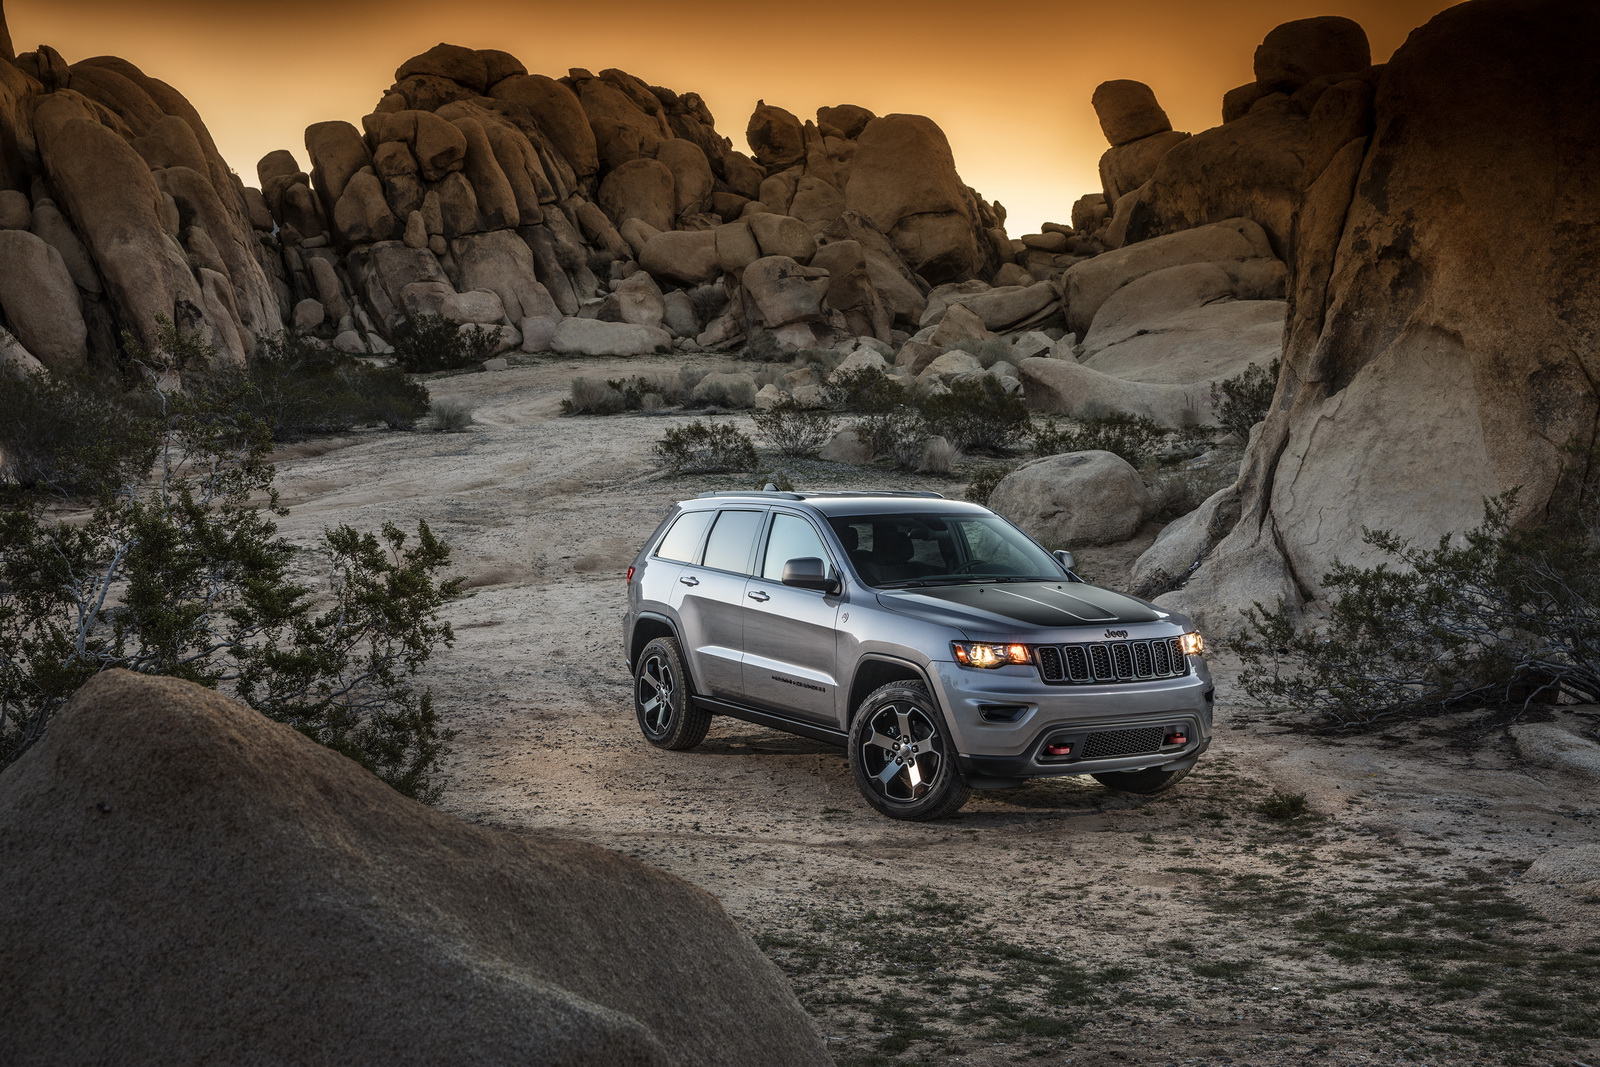 new trailhawk is the most off road capable jeep grand cherokee 30 pics video carscoops. Black Bedroom Furniture Sets. Home Design Ideas